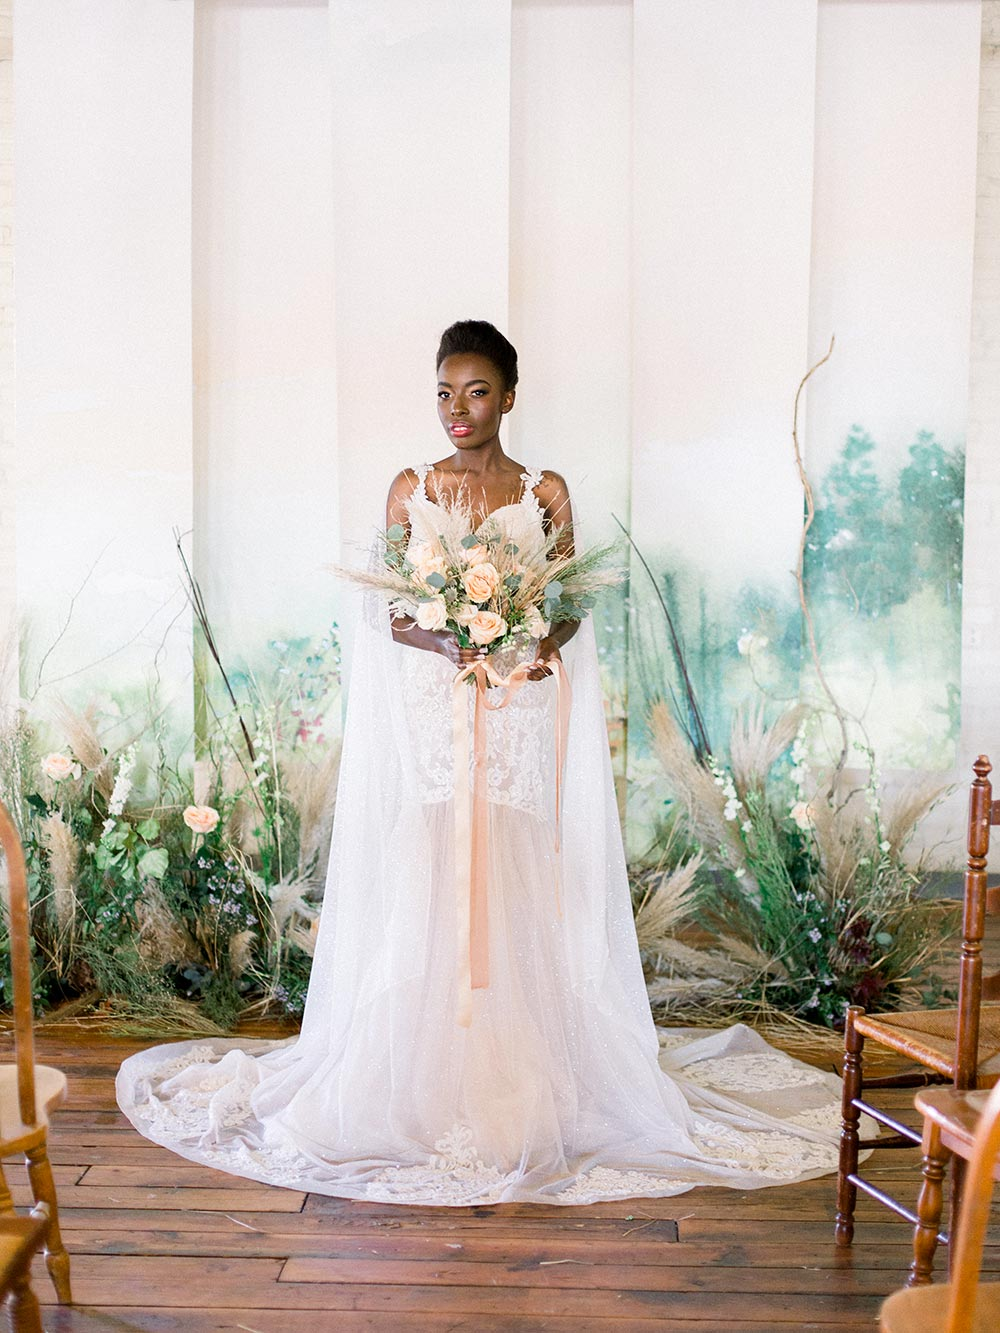 shimmery bridal gown with wing panels and a watercolor mural backdrop with wild overgrown flowers